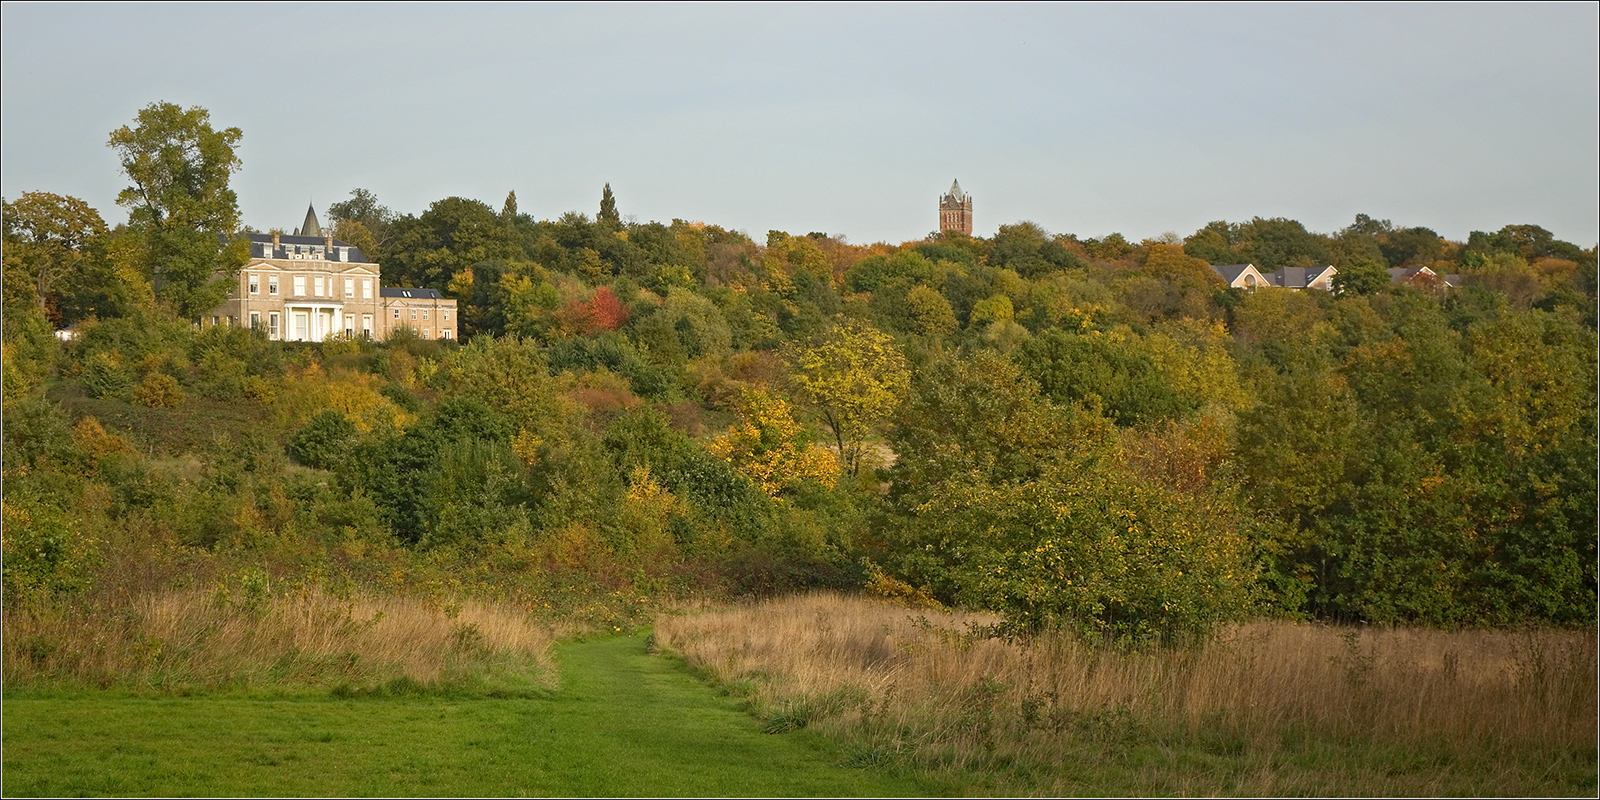 20151025_Redbridge_Claybury-Park_Claybury-Hall-in-autumn